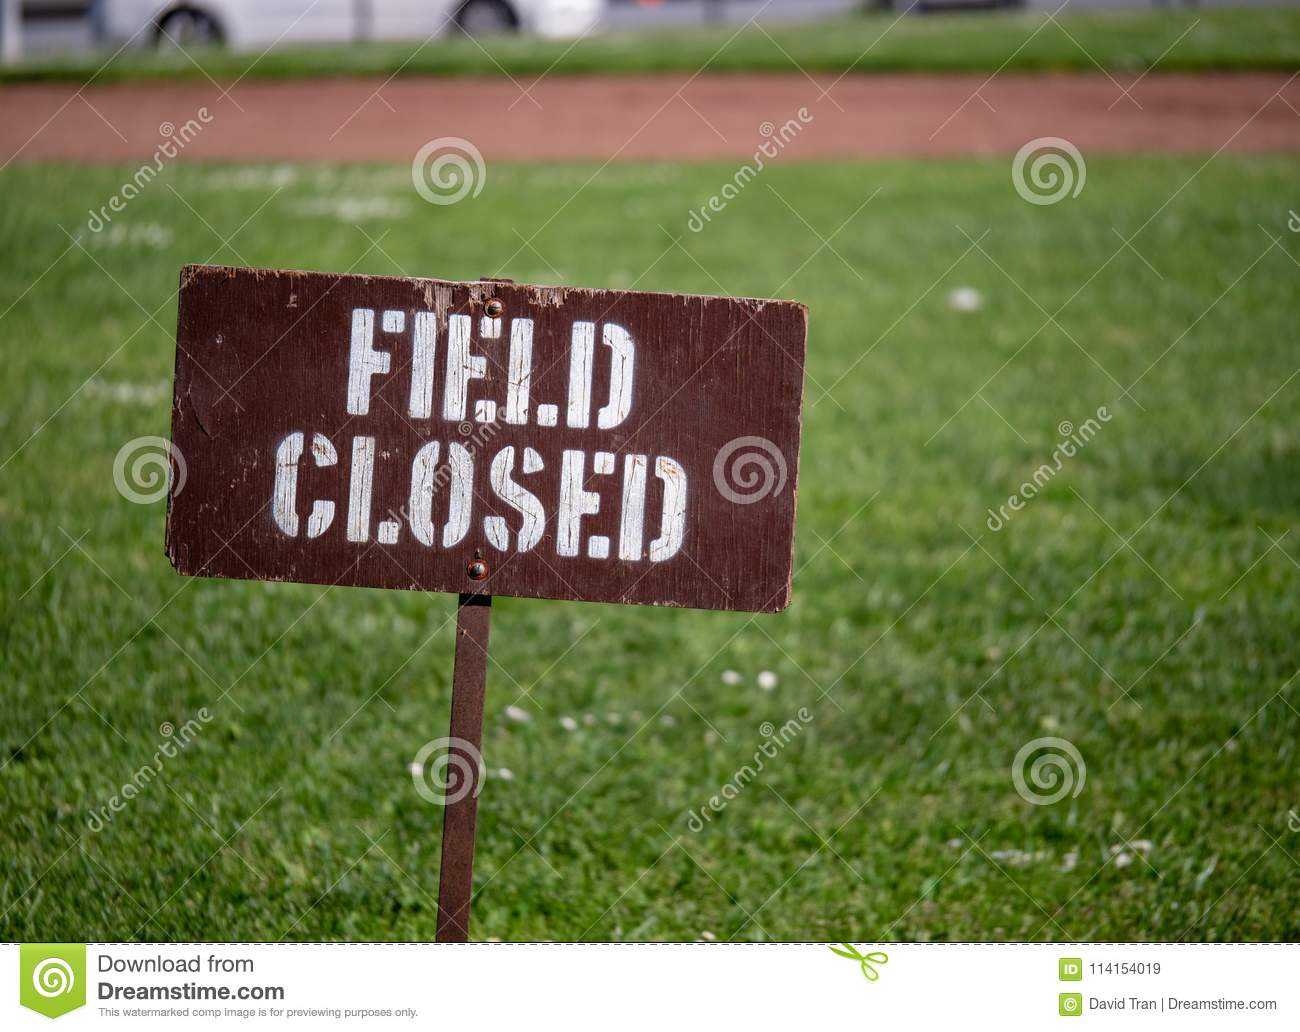 """Field closed"" sign blocking access to a field in a park"